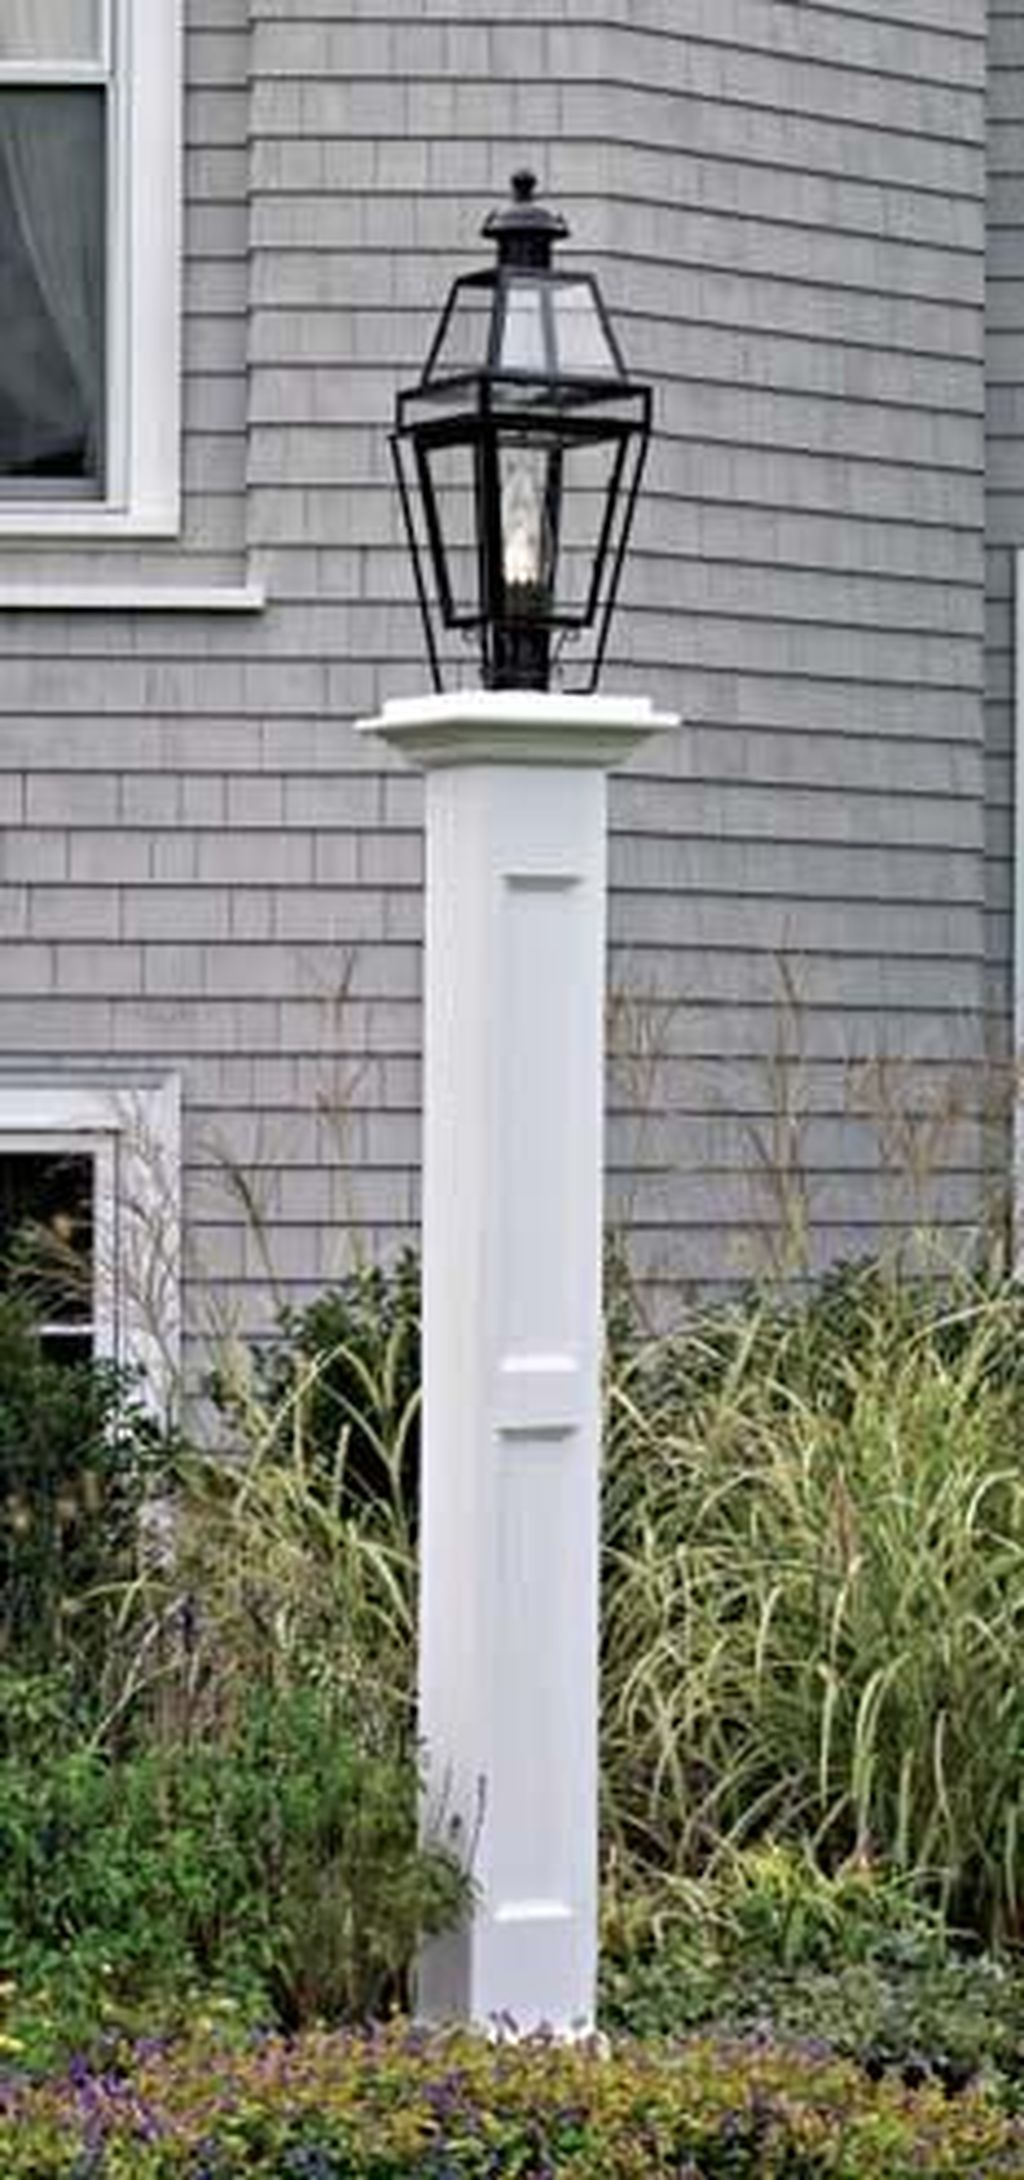 34 Stunning Outdoor Lamp Posts For Front Yards Decor Pimphomee Outdoor Lamp Posts Front Yard Decor Outdoor Lamp